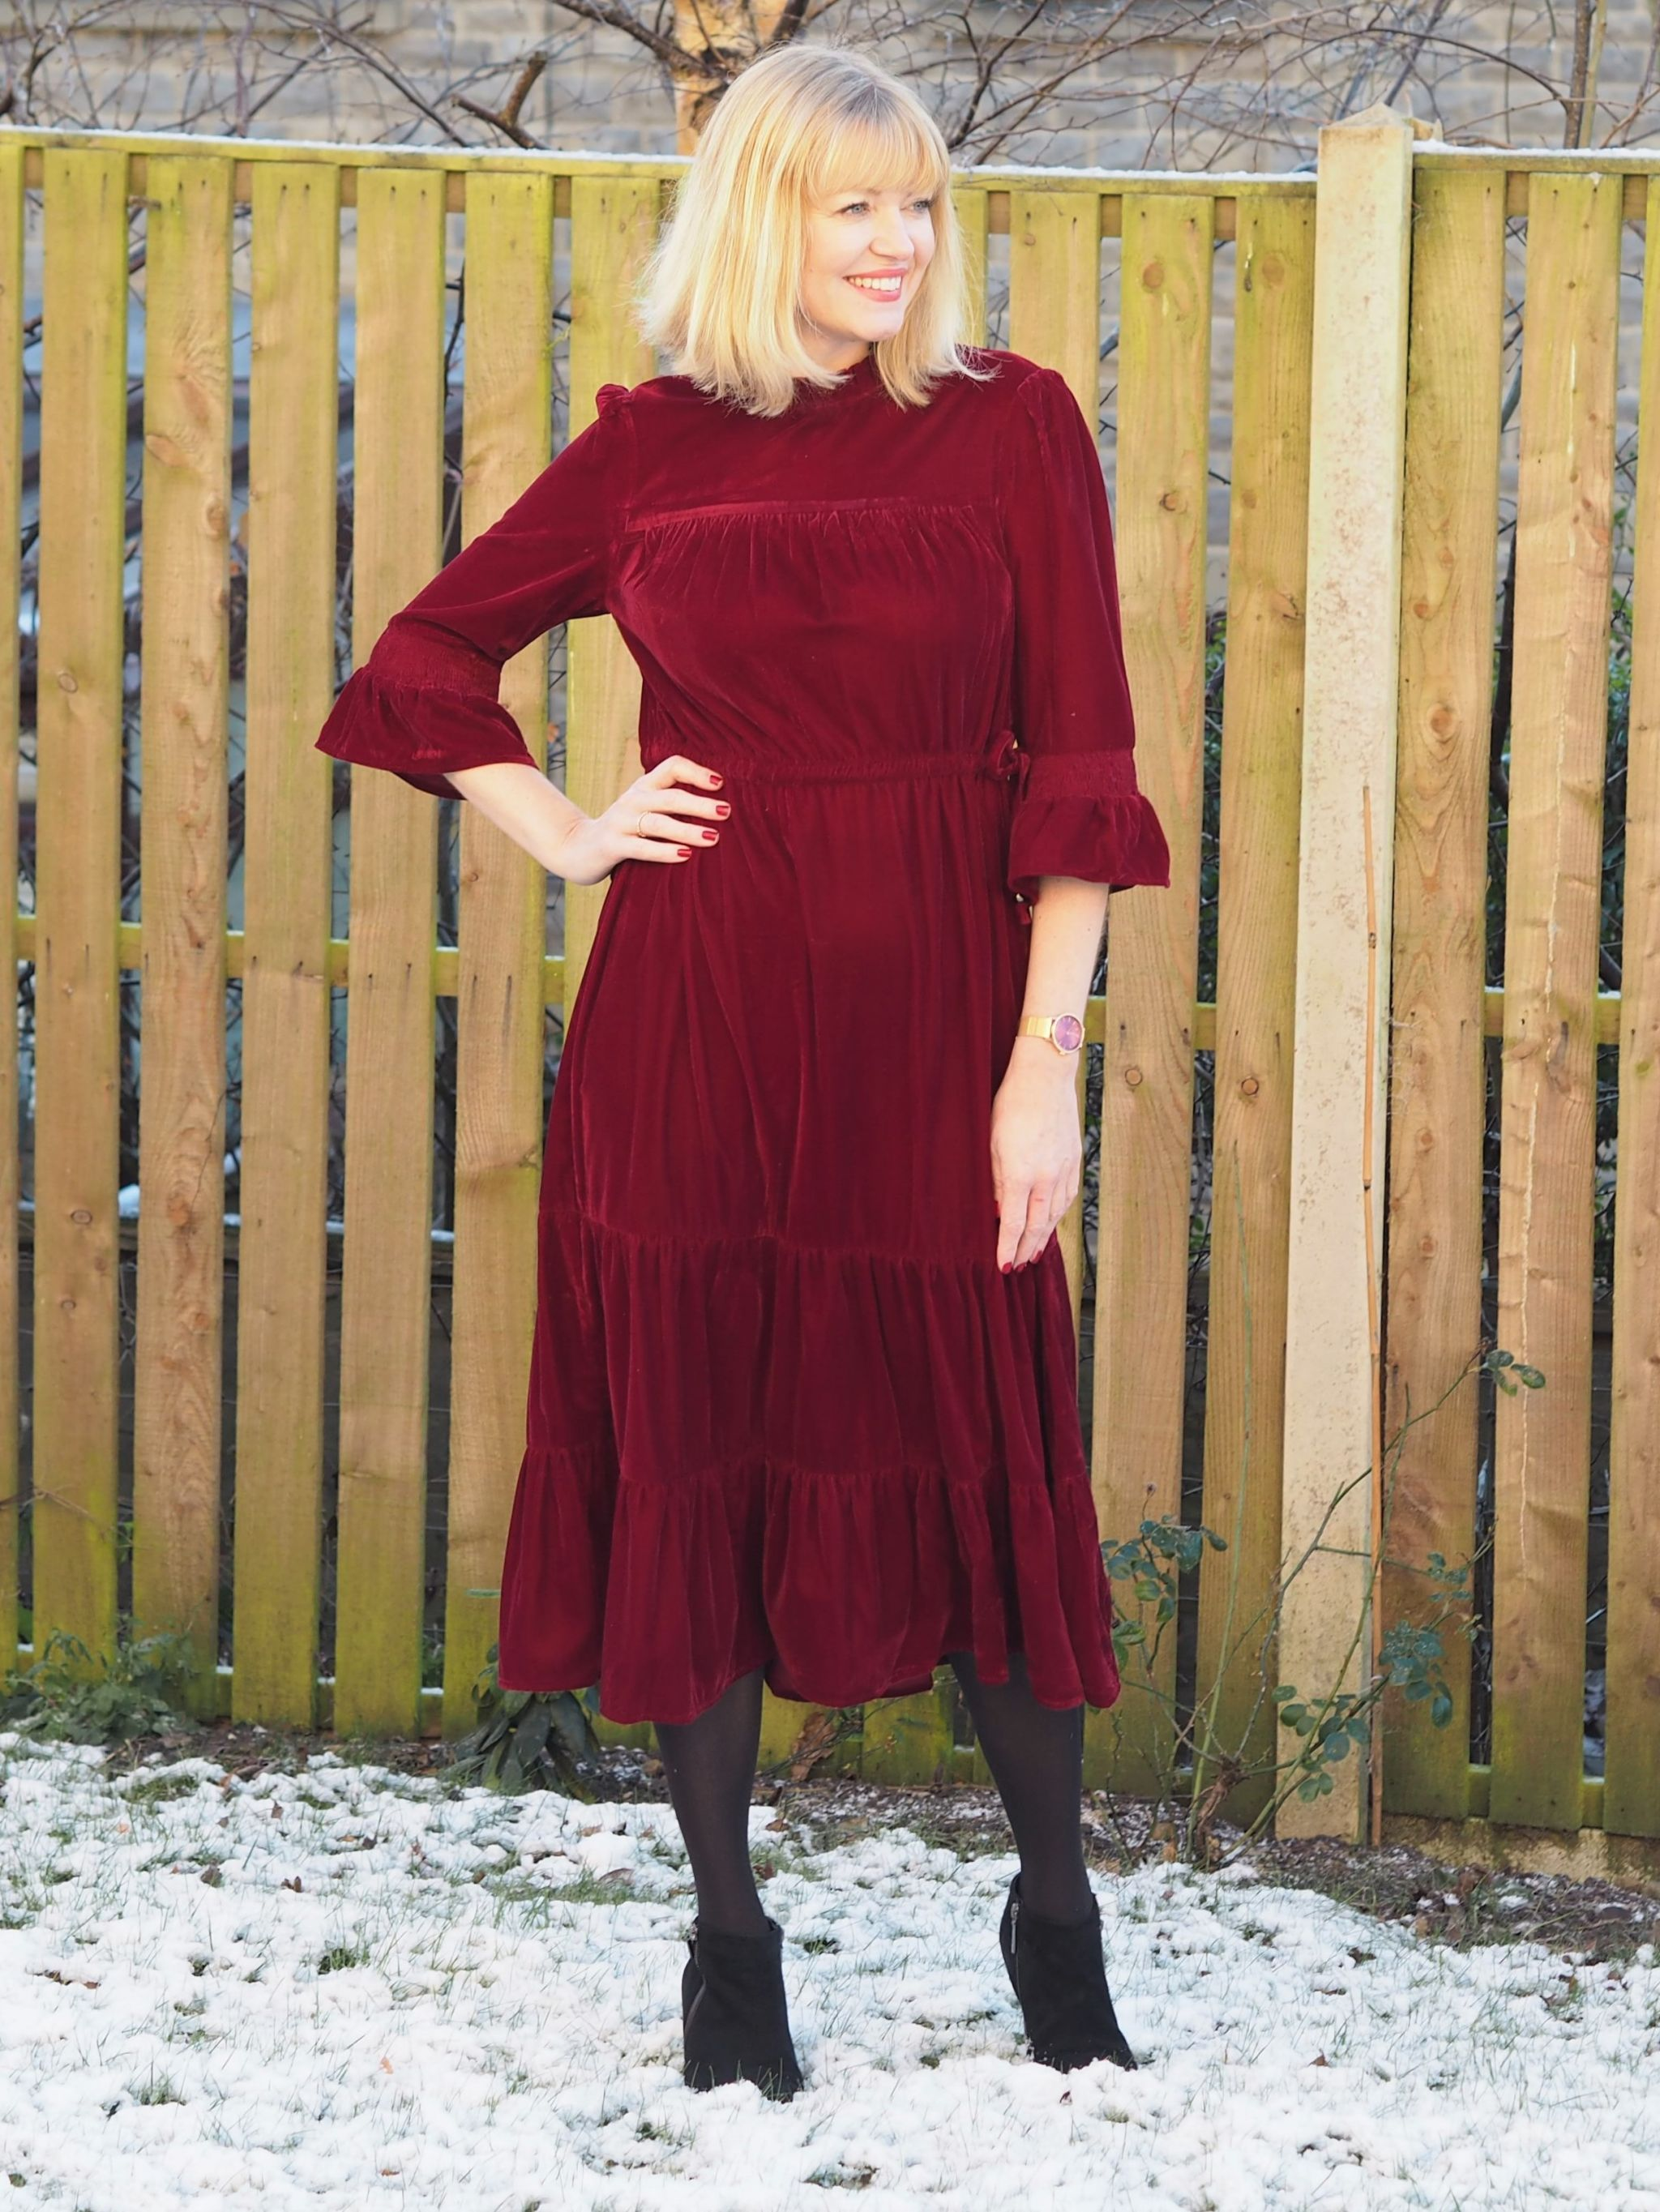 Red Velvet Midi Dress With High Heeled Ankle Boots What